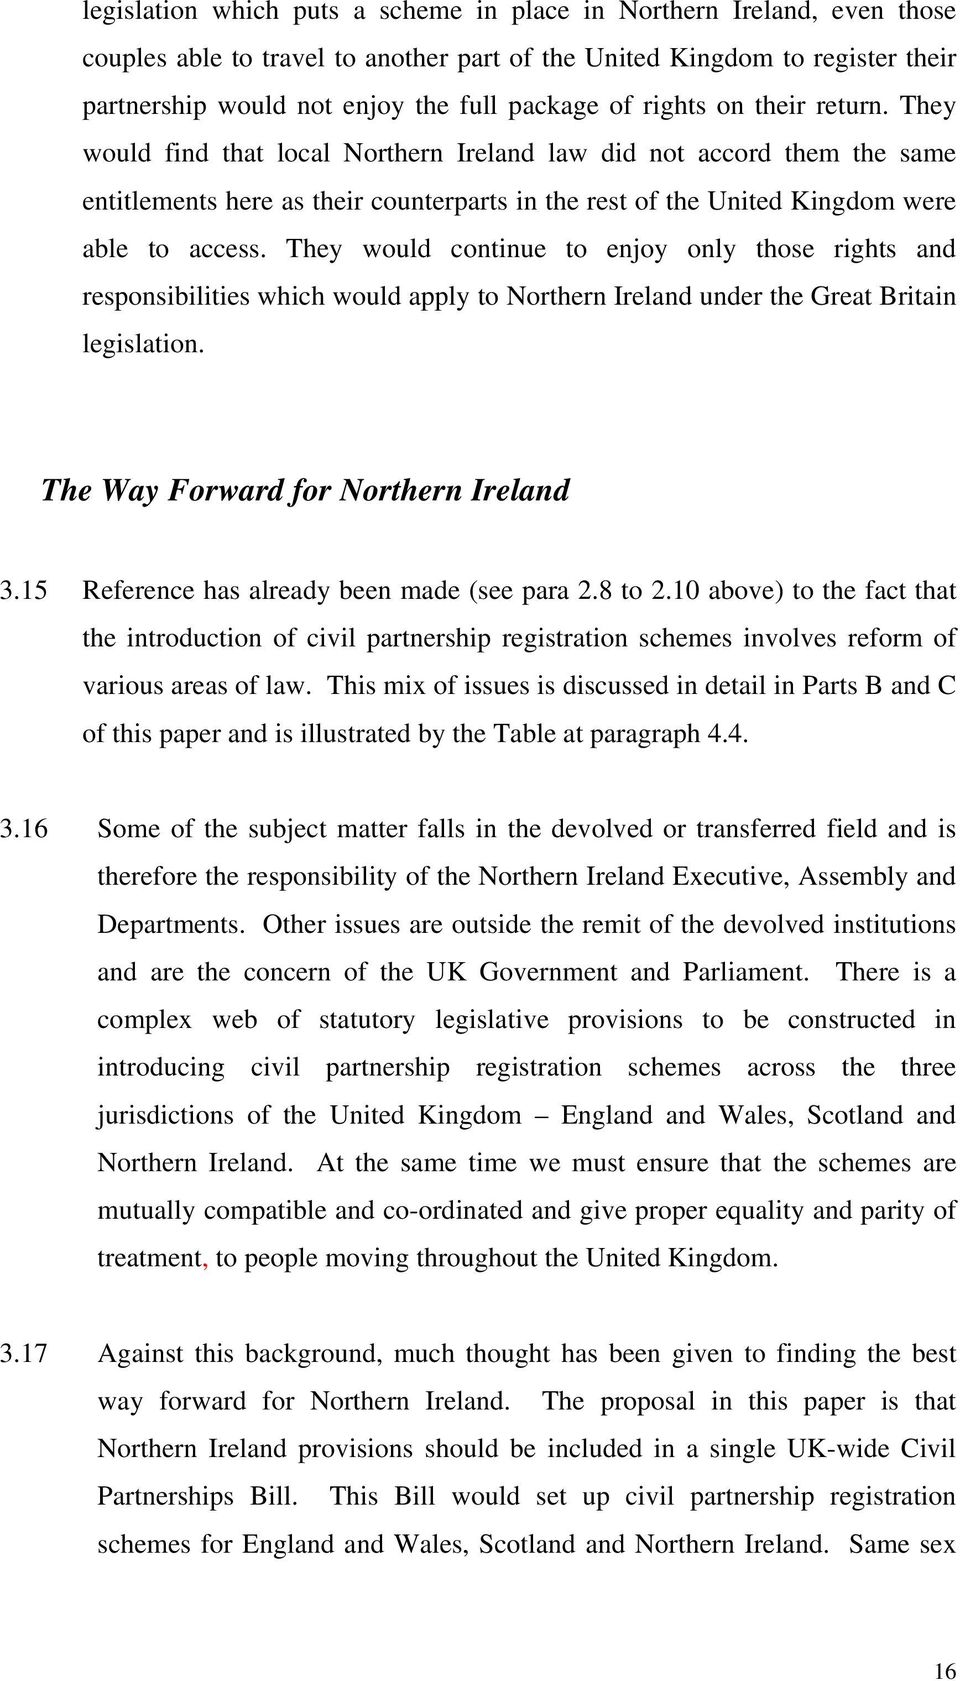 They would continue to enjoy only those rights and responsibilities which would apply to Northern Ireland under the Great Britain legislation. The Way Forward for Northern Ireland 3.